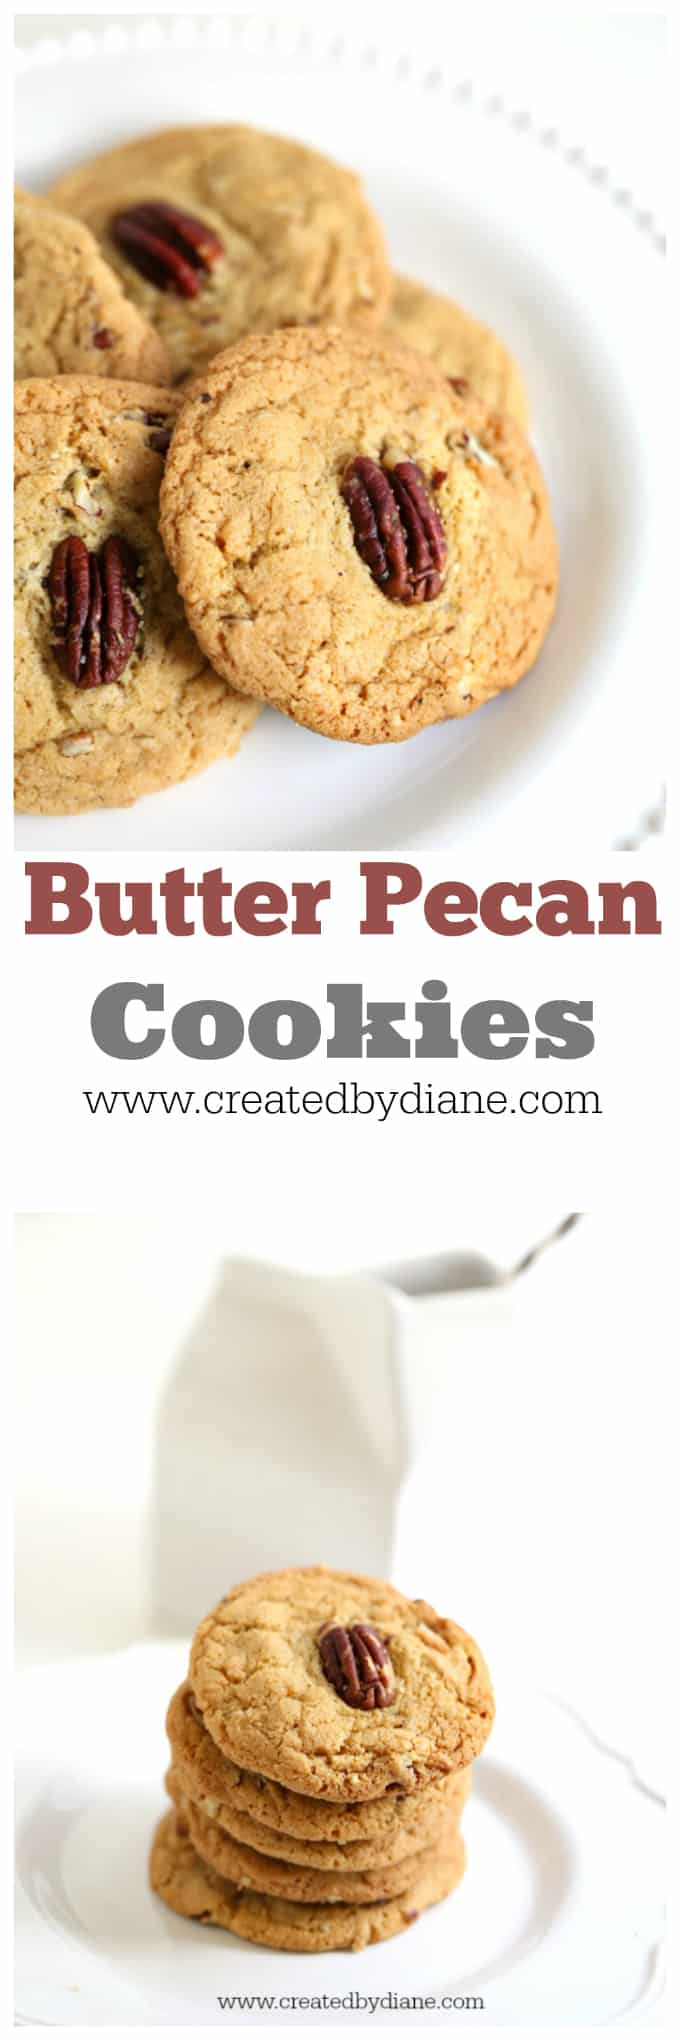 Butter Pecan Cookie Recipe from www.createdbydiane.com